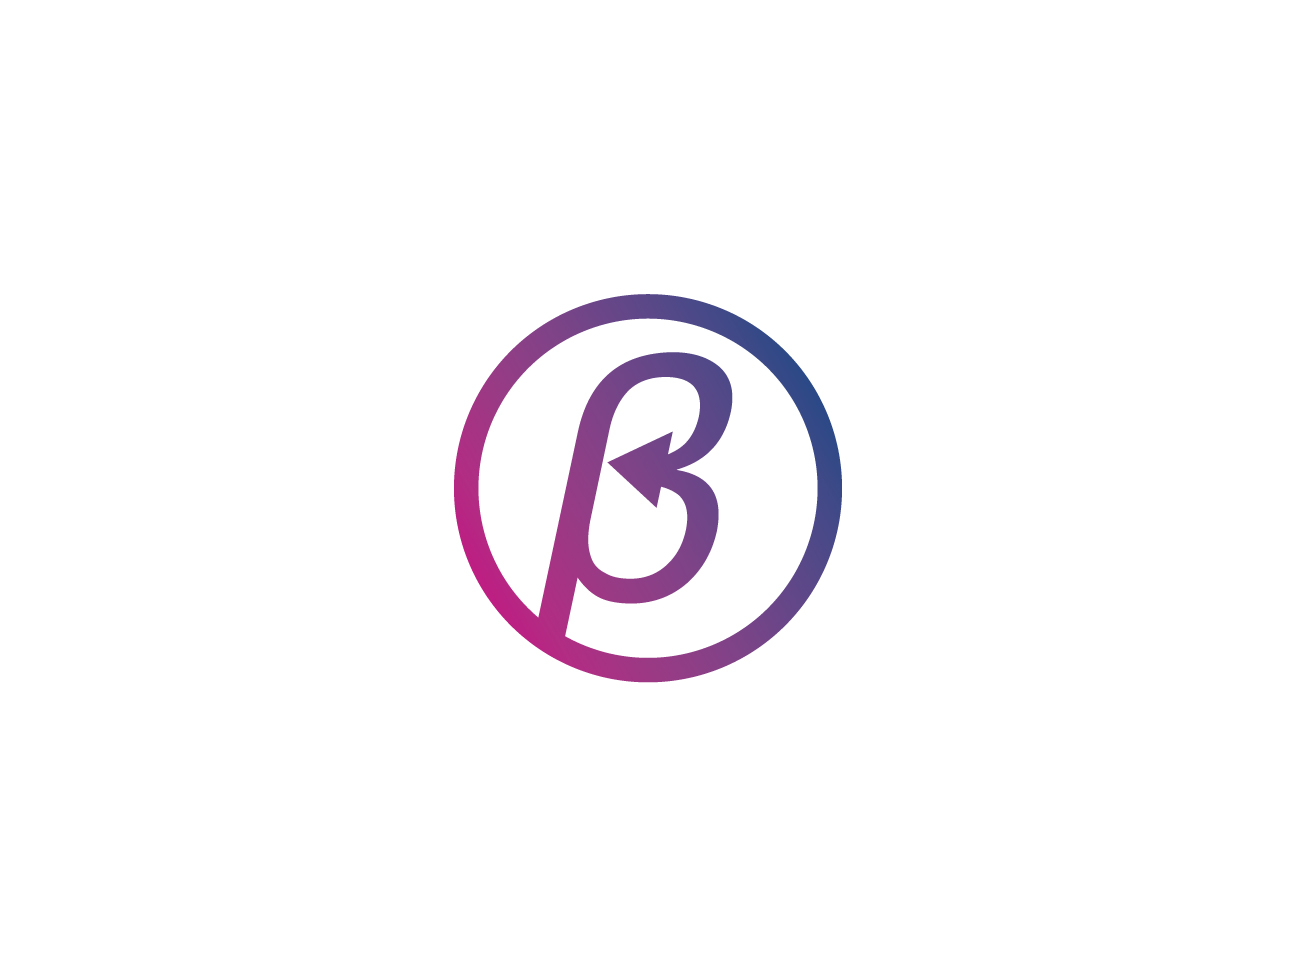 martin zech design, corporate design, pink-beta, bildmarke